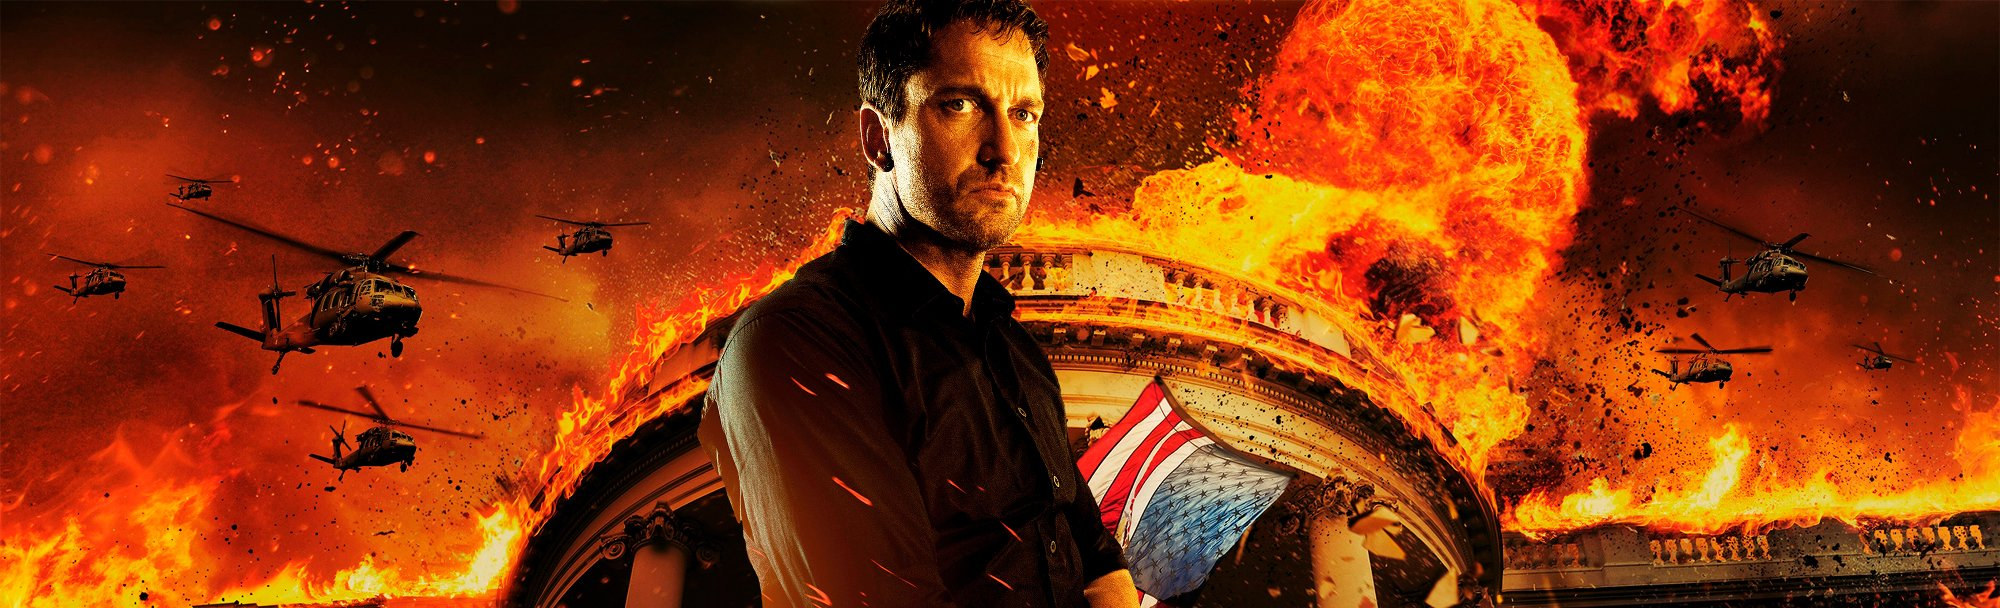 Film: Olympus Has Fallen feature image